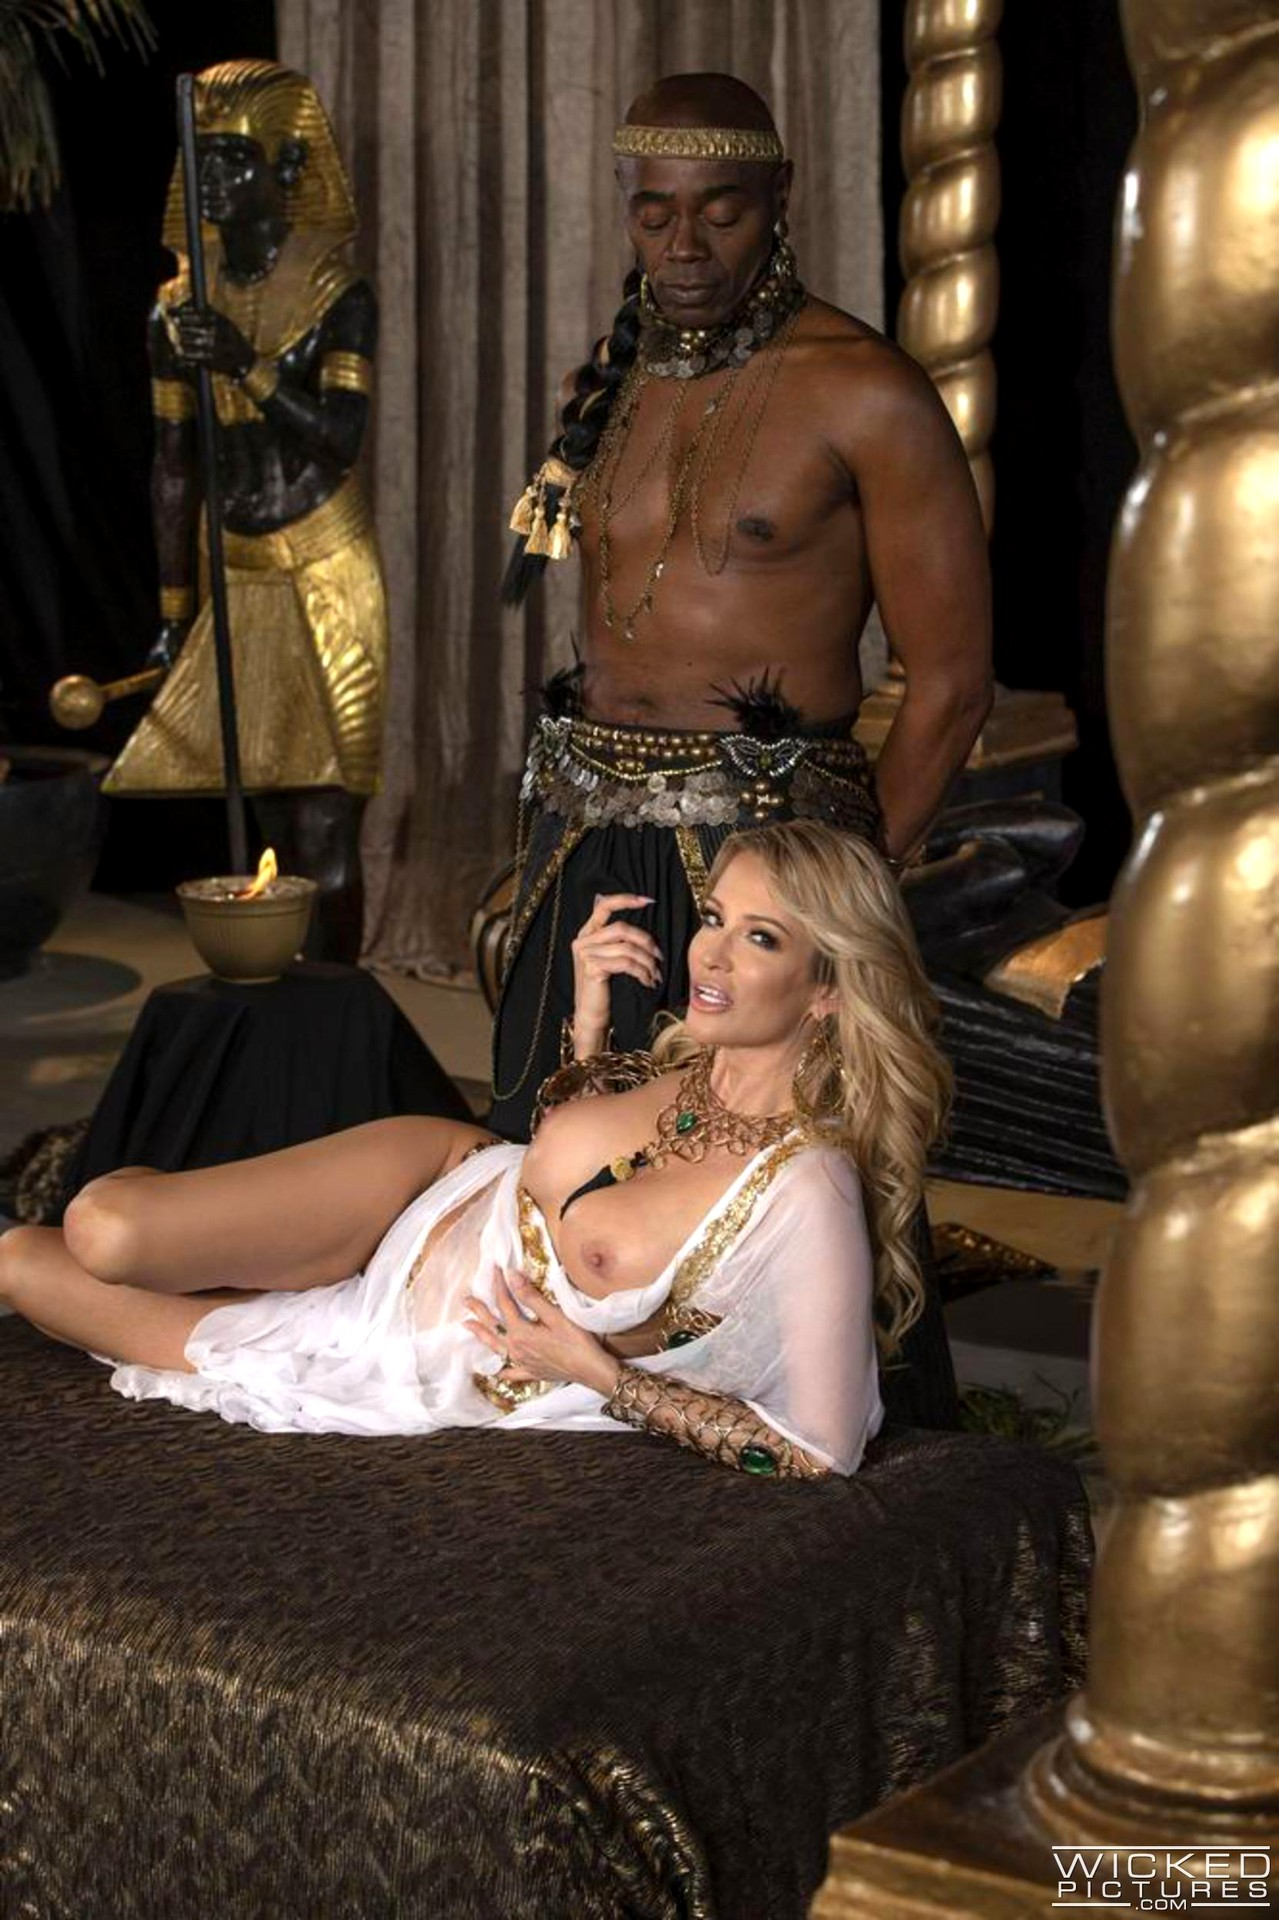 Babe Today Wicked Pictures Jessica Drake Imagescom -3272